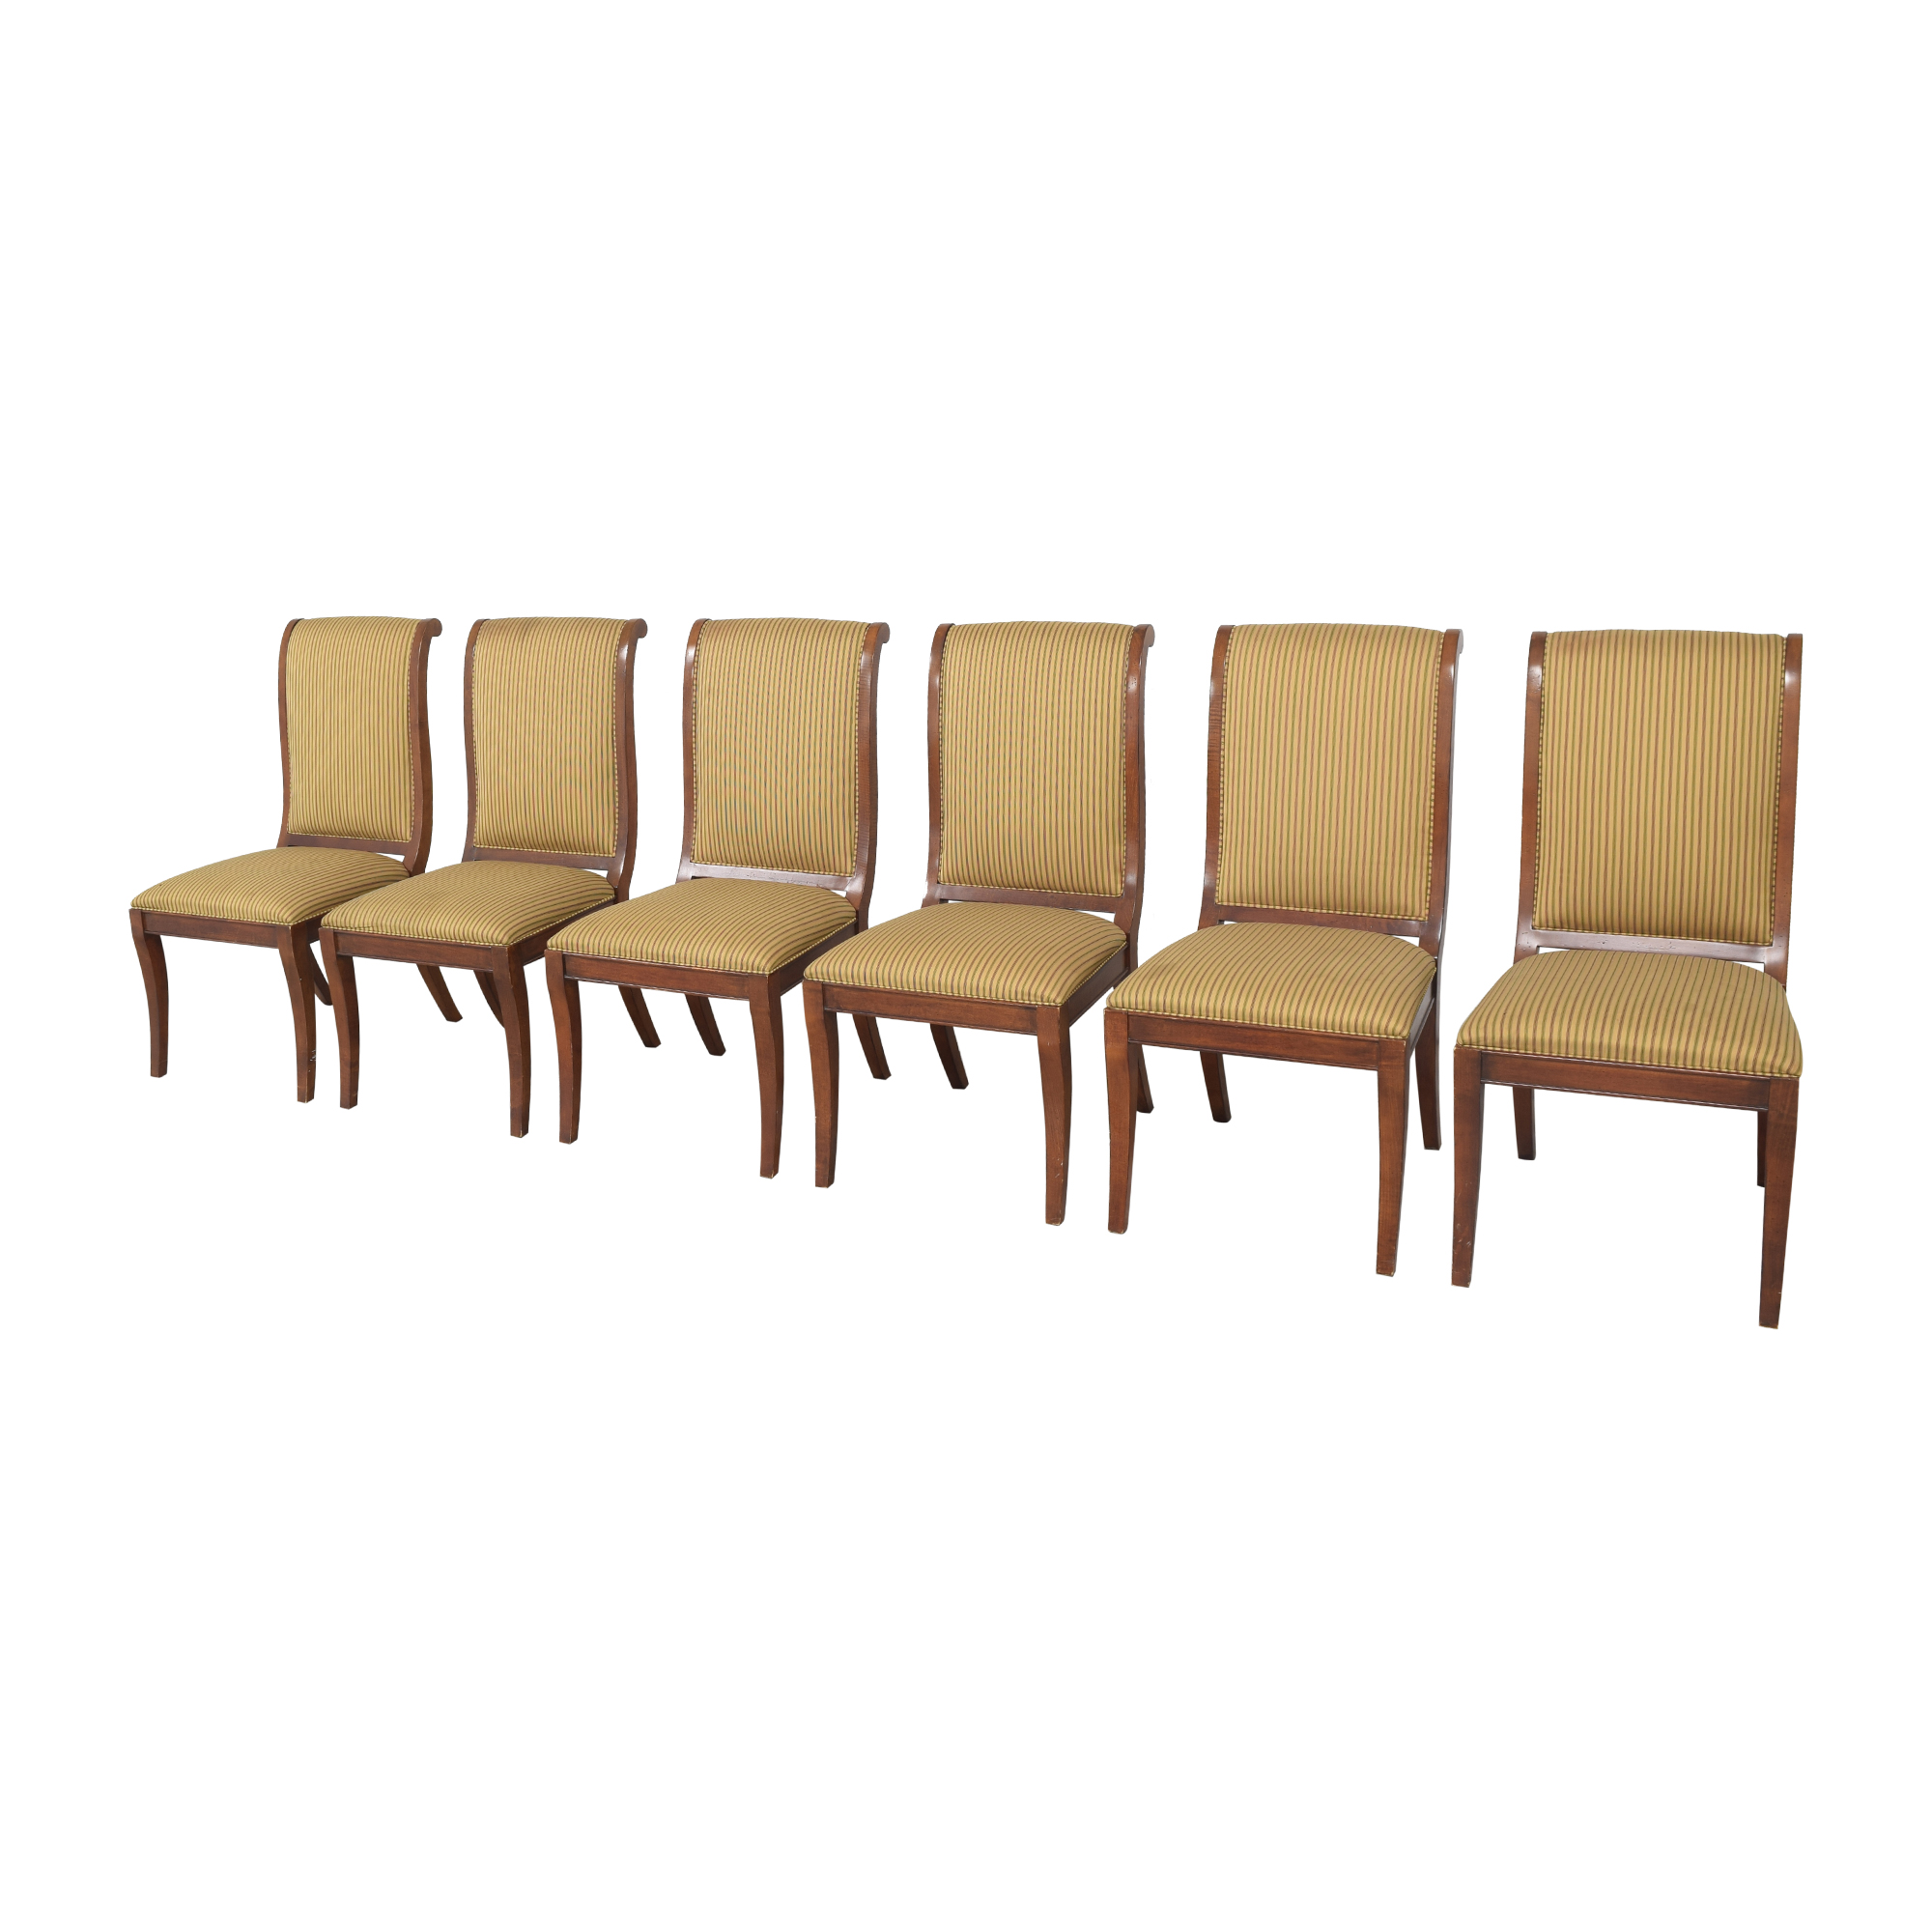 Drexel Heritage Upholstered Dining Chairs / Dining Chairs